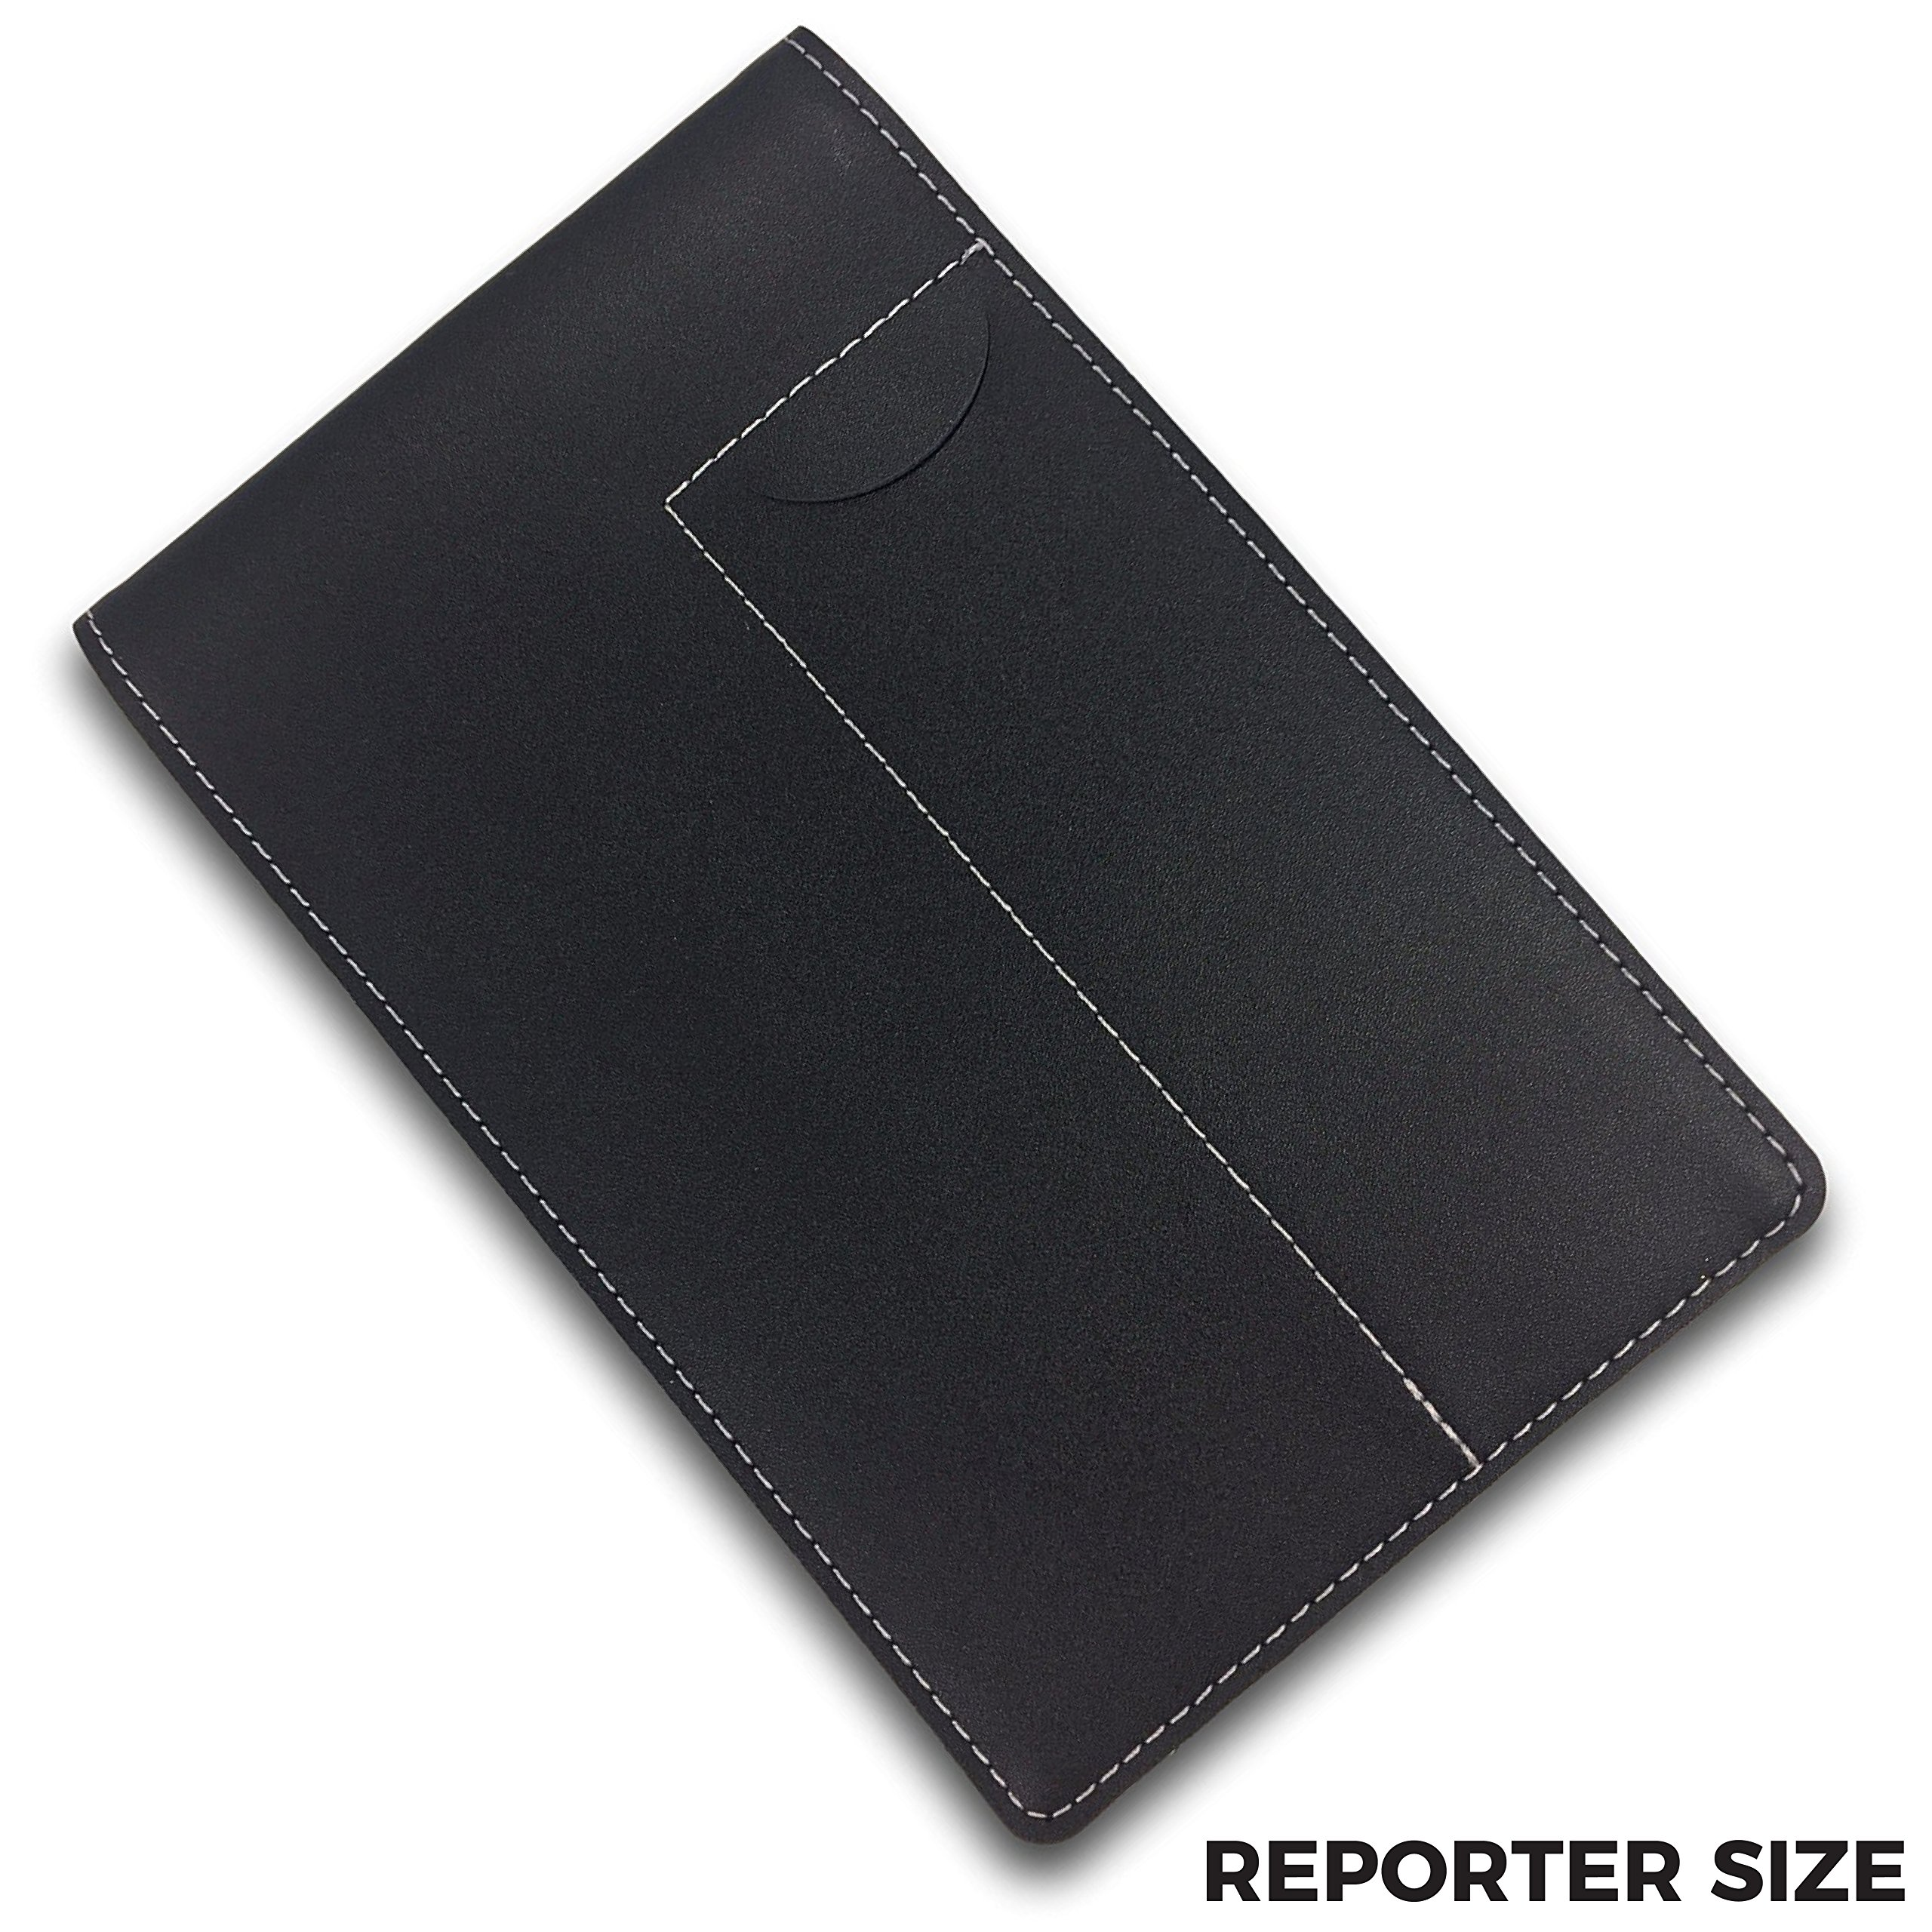 "Reporter's Notebook Cover and Holder for Extra Stability – 4"" x 8"" Black Leather, Includes a Pen Pocket"